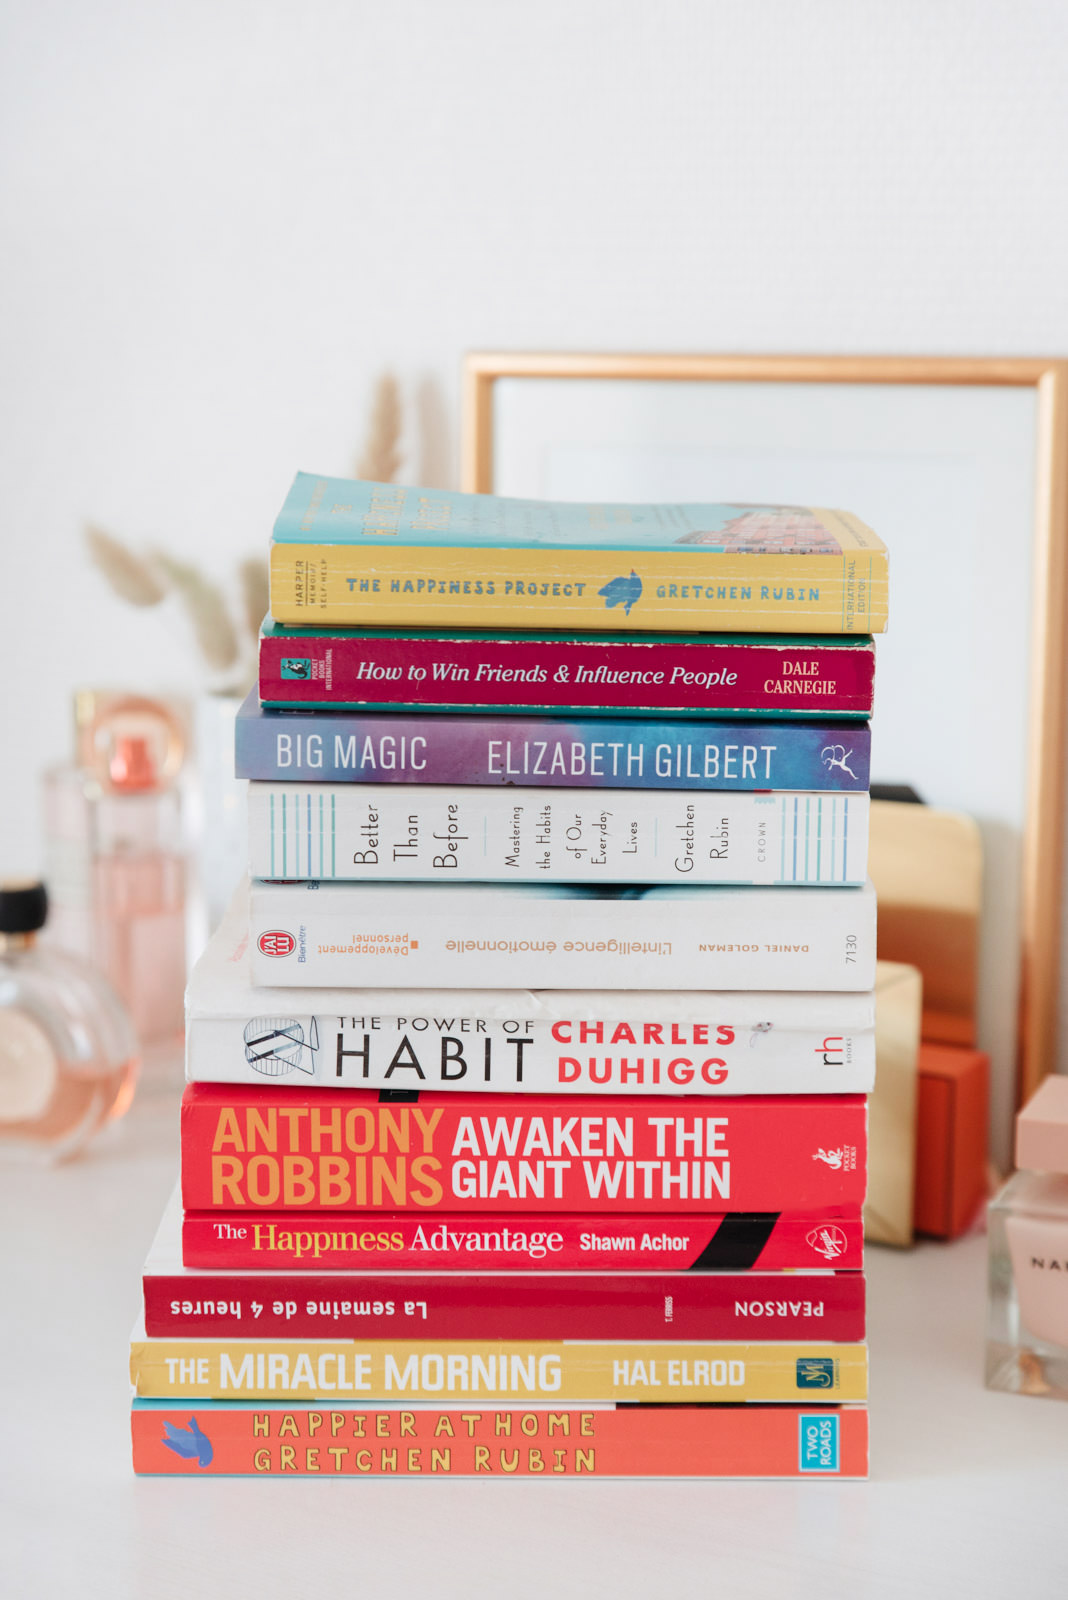 Blog-Mode-And-The-City-Lifestyle-Be-Inspired-11-livres-developpement-ersonnel